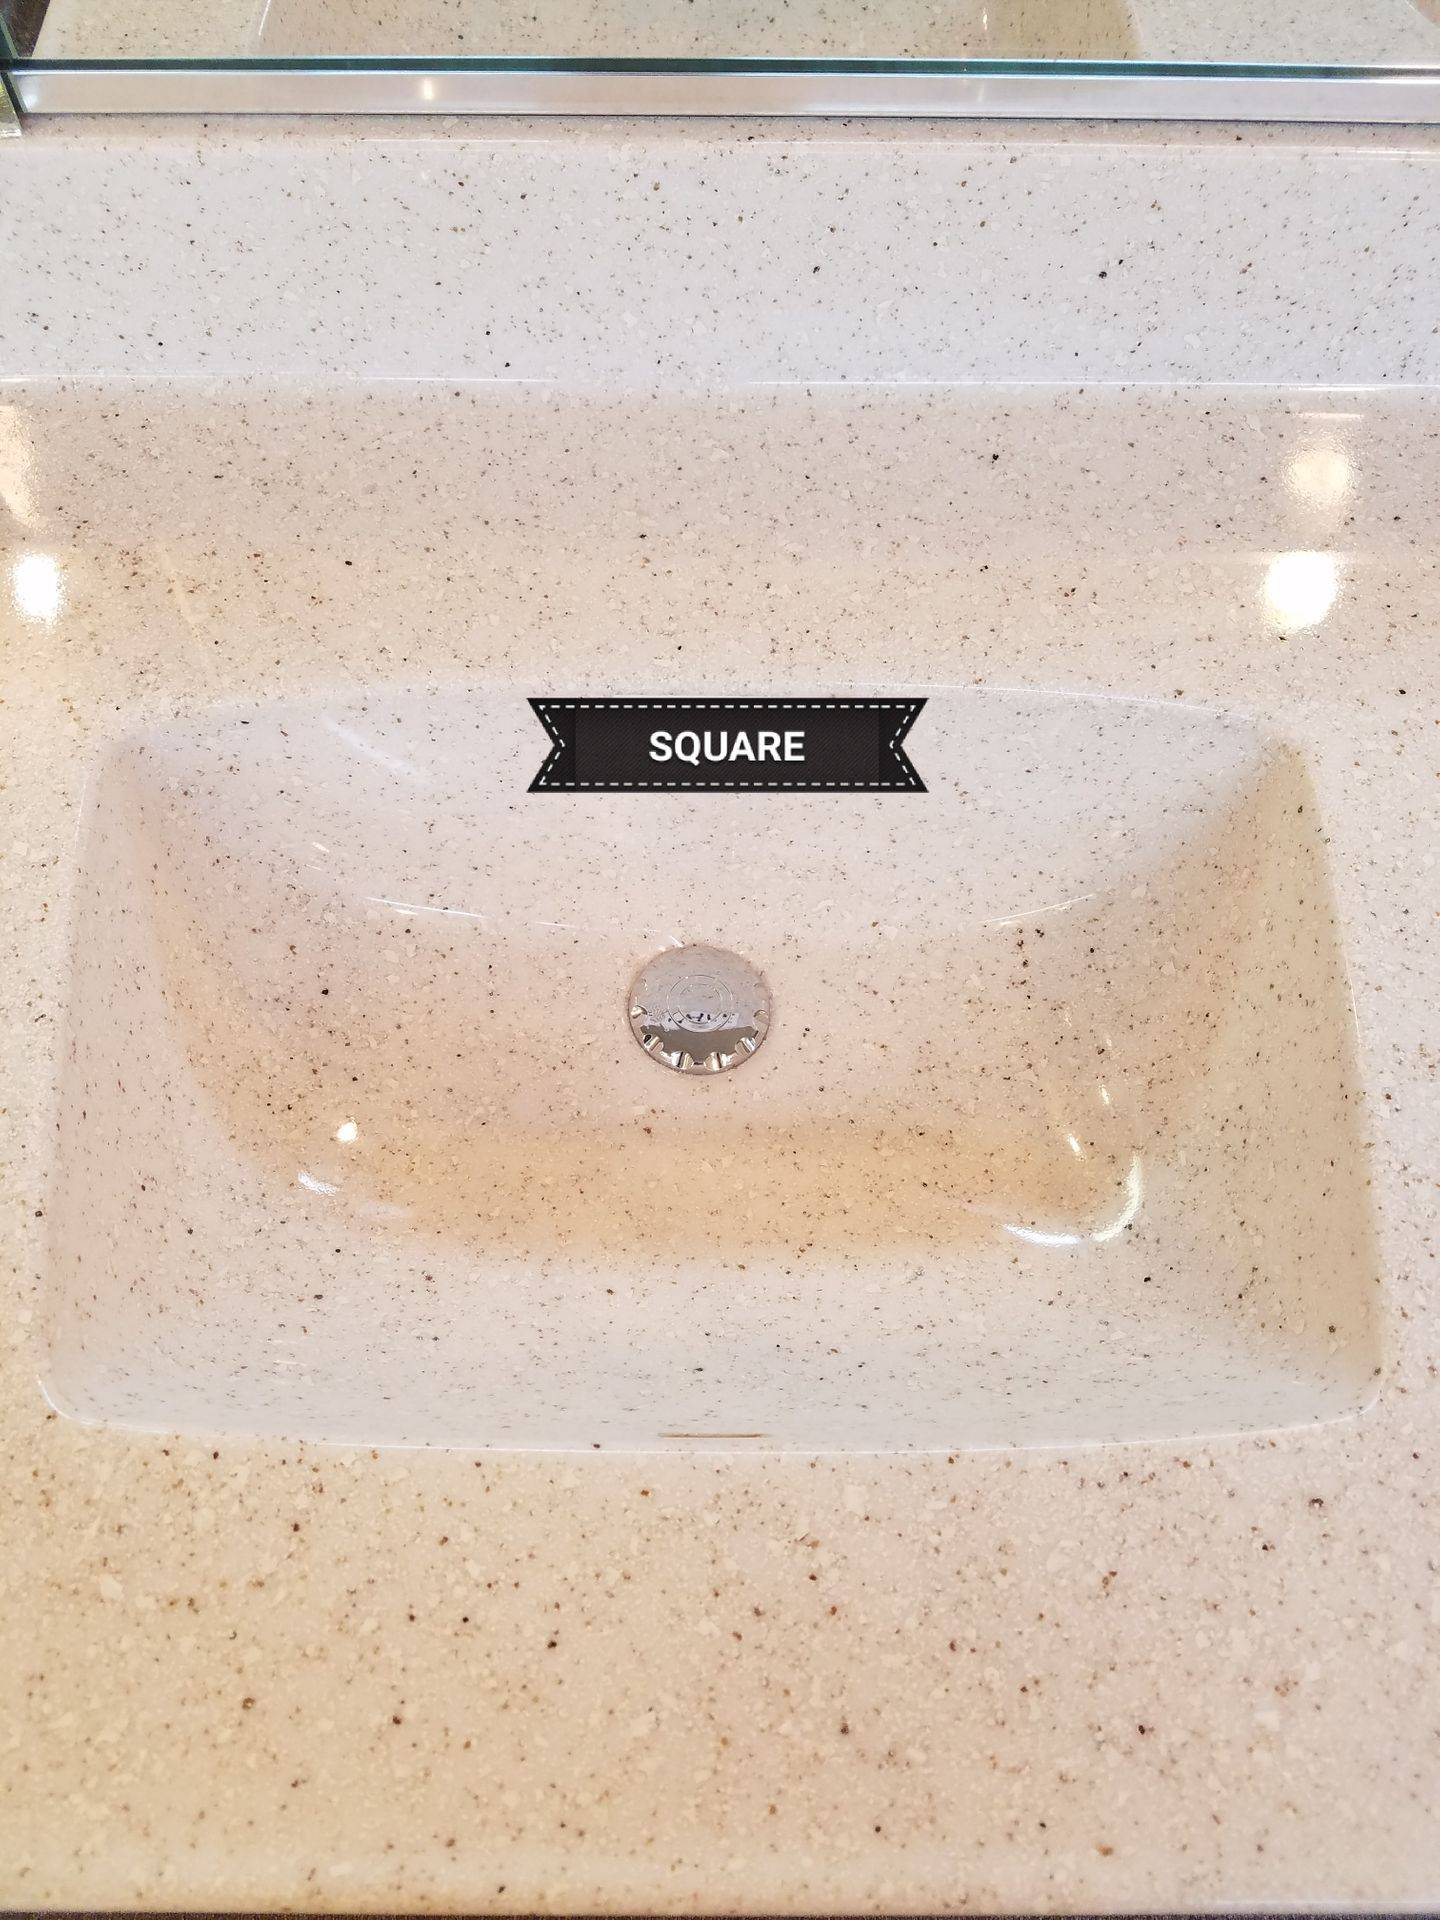 Beautiful sink in a square style